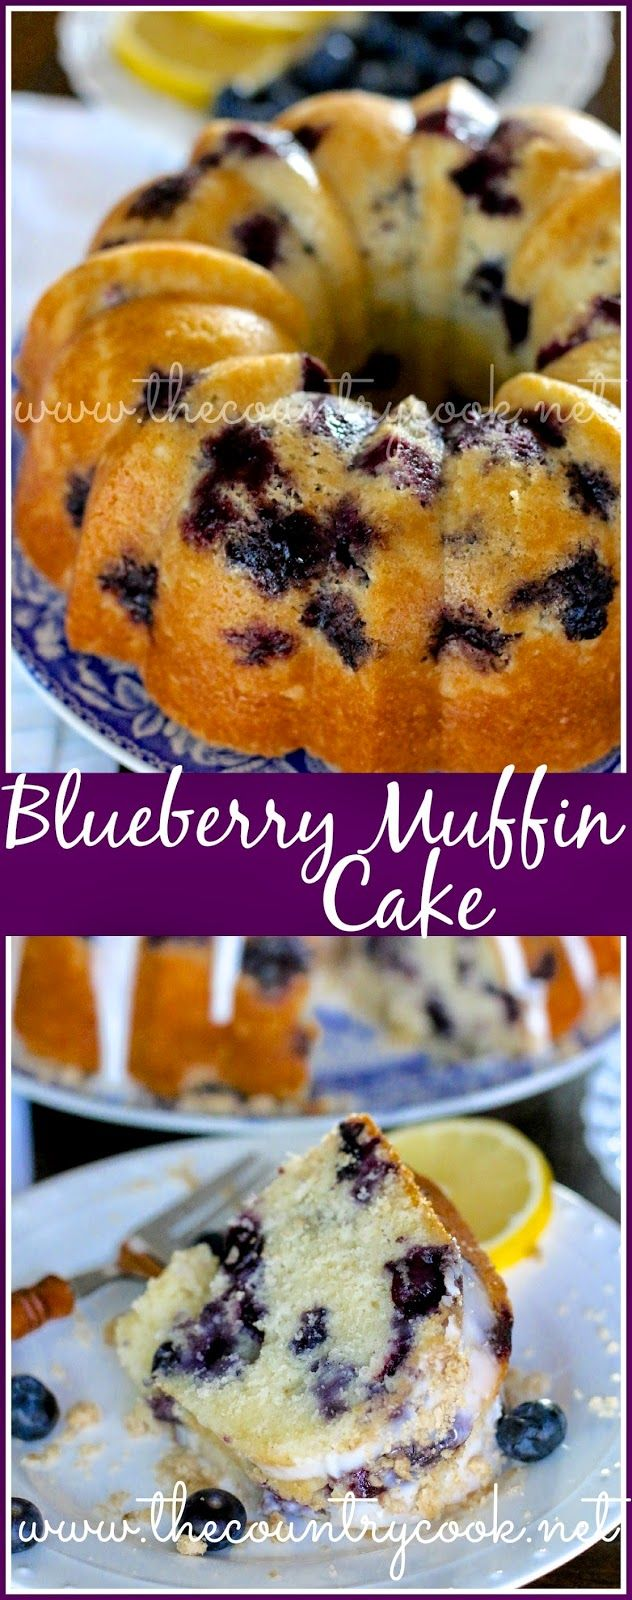 Blueberry Muffin Cake – one of THE BEST cakes Ive made in a long time. Homemade, moist & yummy with a hint of lemon – so good!